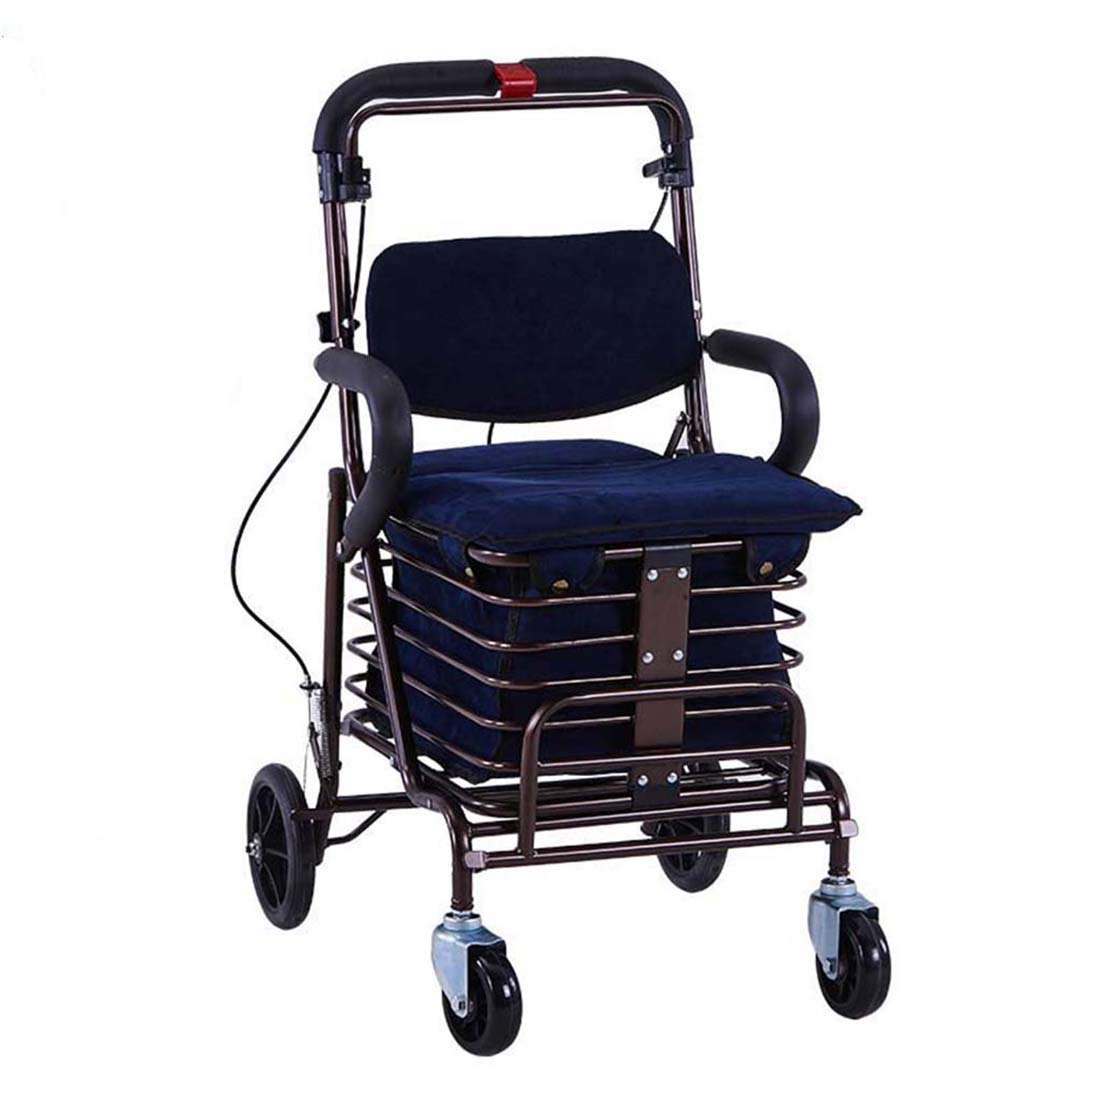 Walking Frame with Wheels Narrow,Lightweight Four Wheeled Rollator with Lockable Brake for Height Adjustment Auxiliary Walking Safety Walker (Size : Blue)